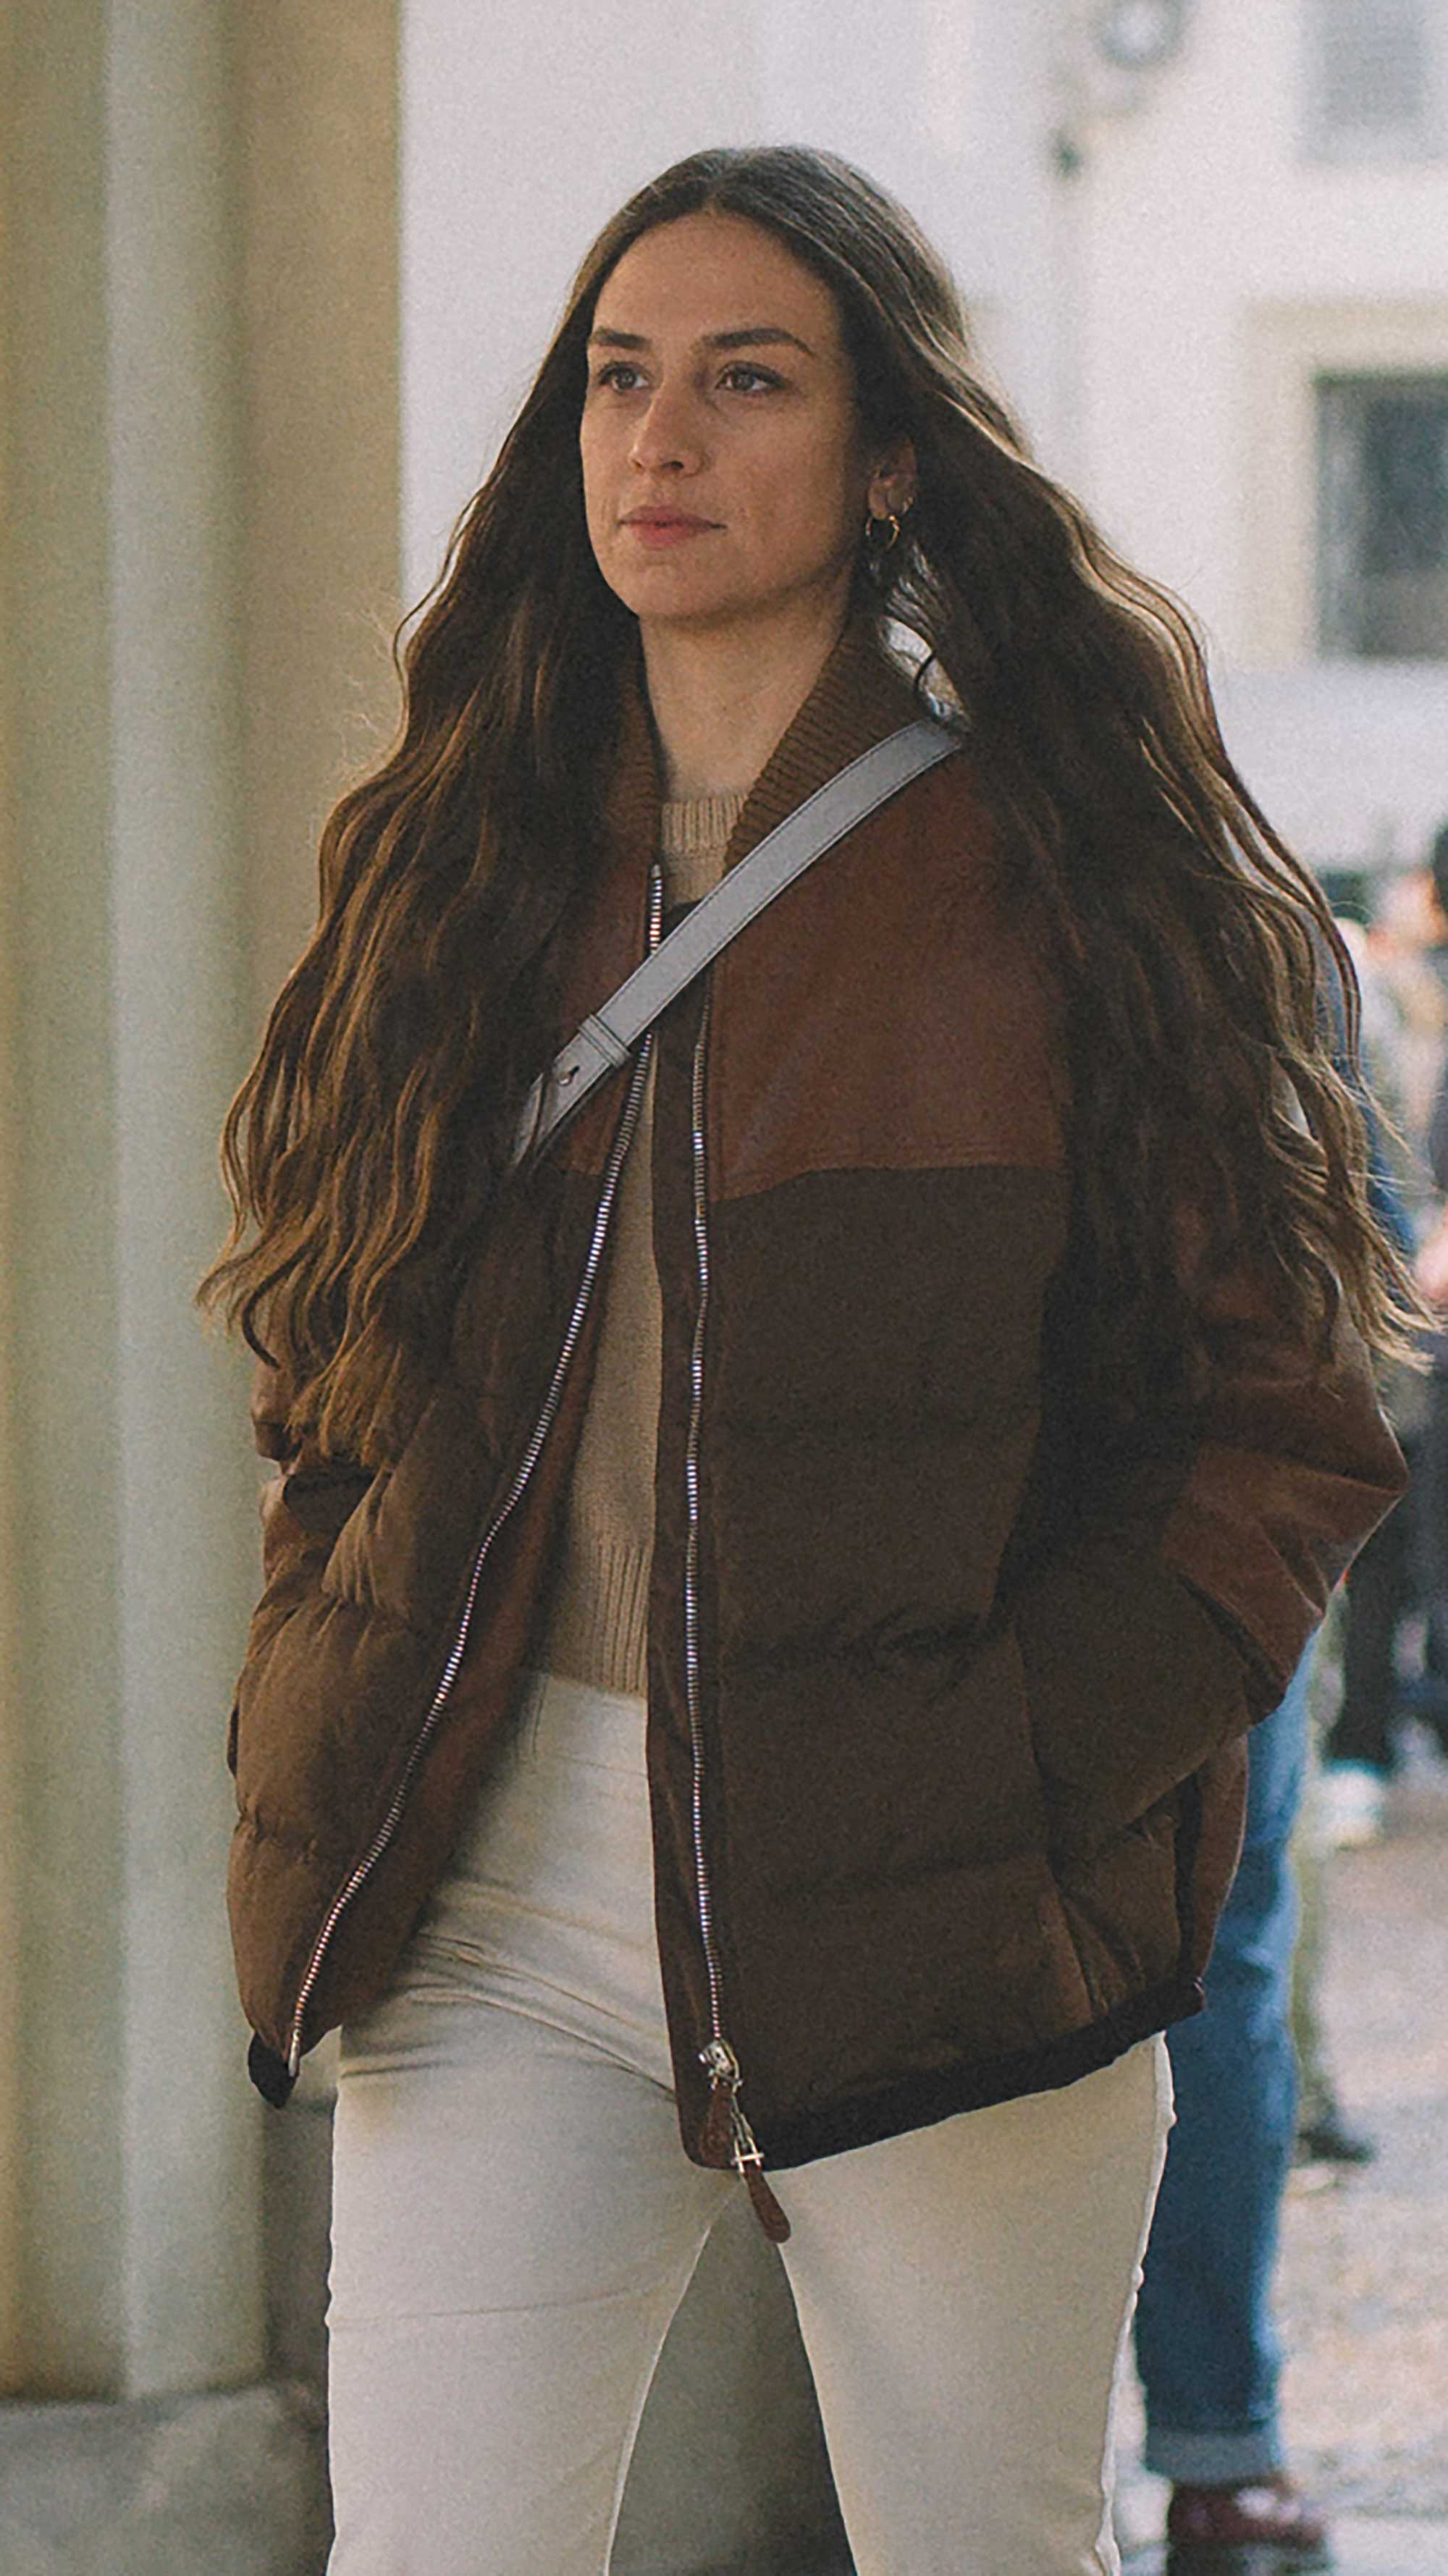 est outfits of Milan Fashion Week street style day two MFW FW19 6.jpg